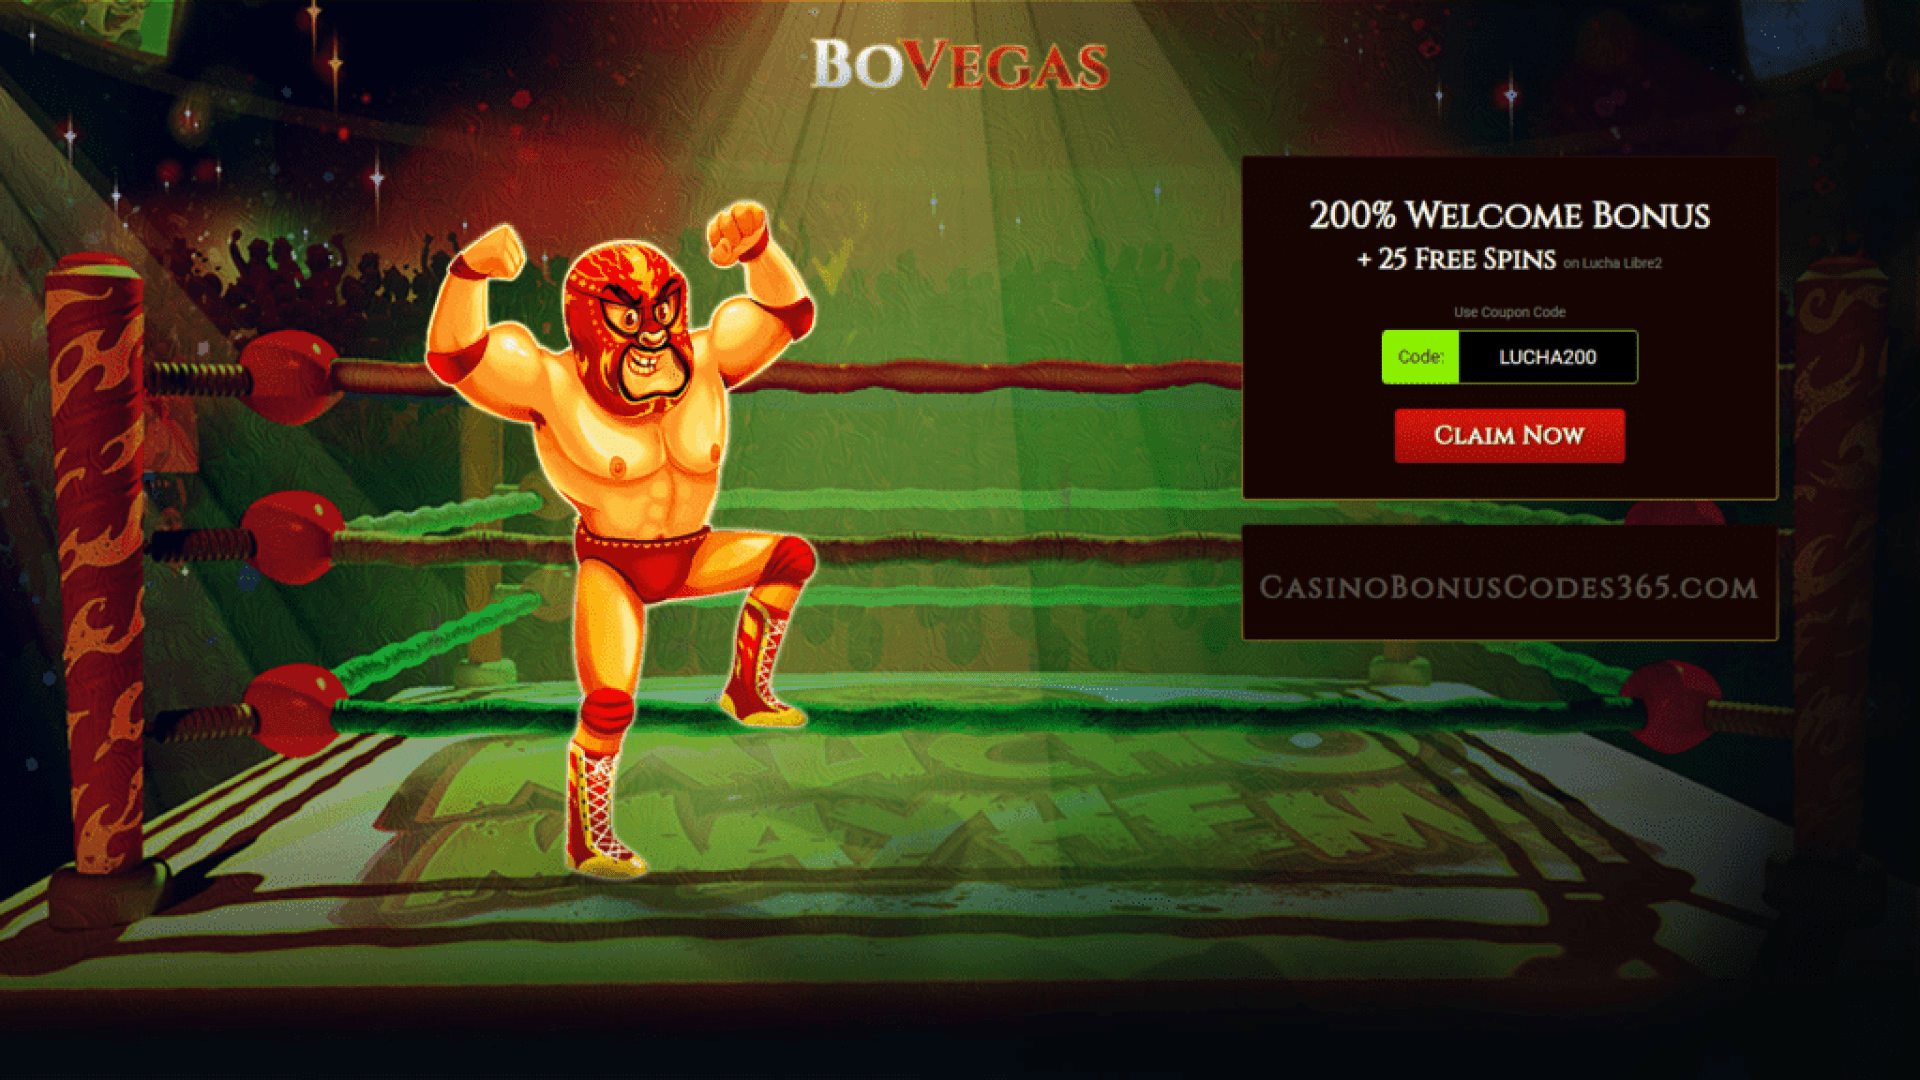 BoVegas Casino 200% Match Bonus plus 25 FREE Spins Welcome Package RTG Lucha Libre 2